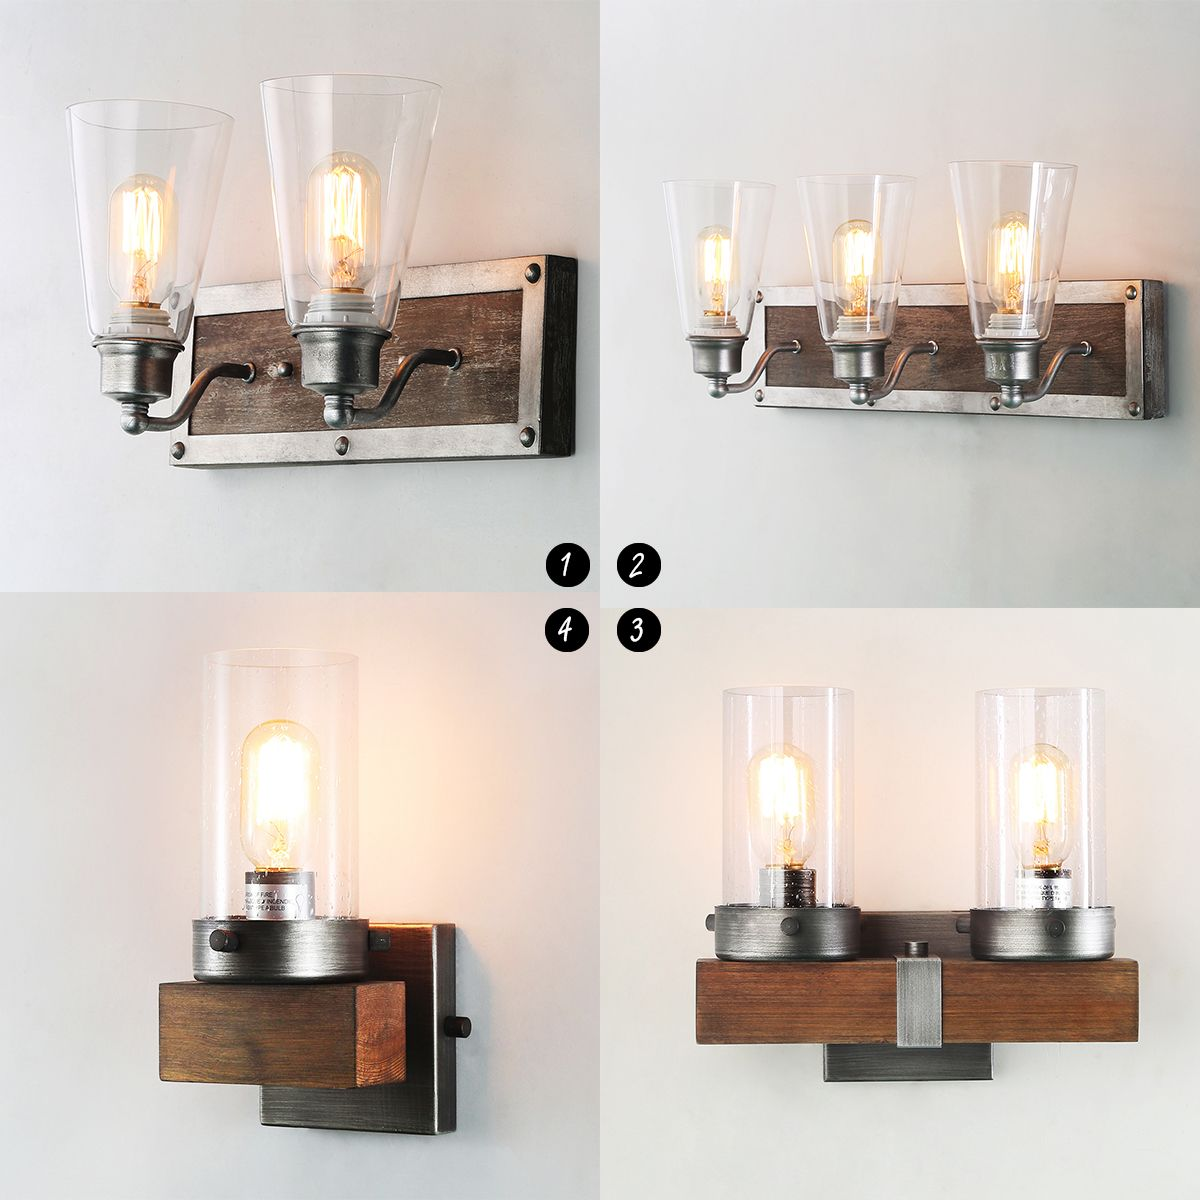 Wood Wall Sconces Indoor Wall Lamps Glass Wall Light Rustic Glass Lampshade Natural Wood Frame Pure Rustic Style Wall Sconces Sconces Sconces Indoor